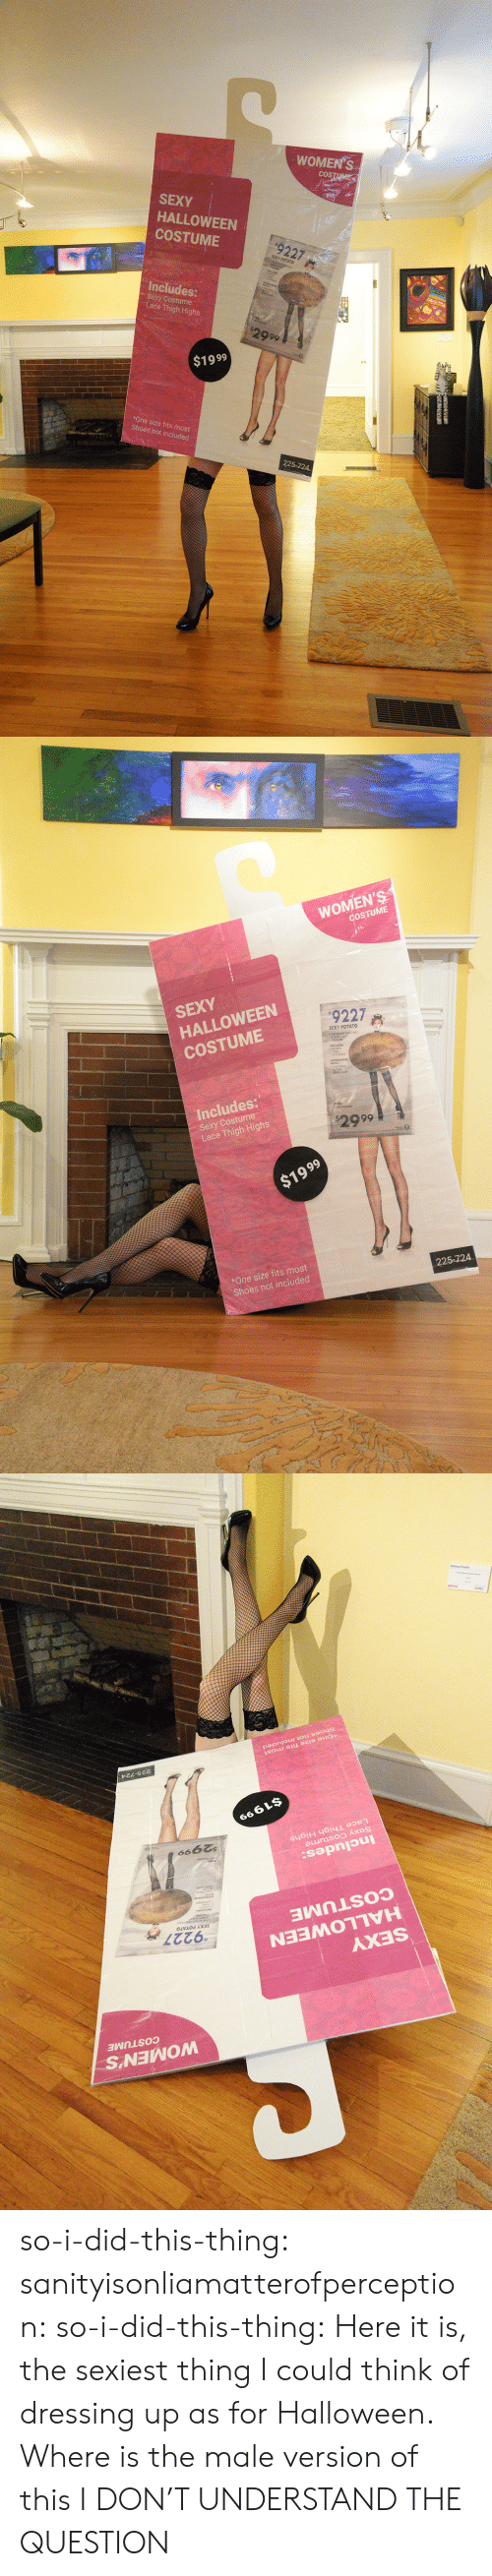 Halloween, Sexy, and Shoes: WOMEN'S  cOS  SEXY  HALLOWEEN  COSTUME  #9227  SEXY POTATO  Includes:  Sexy Costume  Lace Thigh Highs  2999  $1999  *One size fits most  Shoes not included  225-724   WOMEN'S  COSTUME  SEXY  HALLOWEEN  COSTUME  #92272  SEXY POTATO  Includes:  Sexy Costume  Lace Thigh Highs  2999  $1999  *One size fits most  Shoes not included  225-724   WOMEN'S  COSTUME  SEXY  HALLOWEEN  COSTUME  '9227  SEXY POTATO  Includes:  Sexy Costume  Lace Thigh Highs  $2999  $1999  *One size fits most  Shoes not included  225-724 so-i-did-this-thing:  sanityisonliamatterofperception: so-i-did-this-thing: Here it is, the sexiest thing I could think of dressing up as for Halloween.  Where is the male version of this  I DON'T UNDERSTAND THE QUESTION